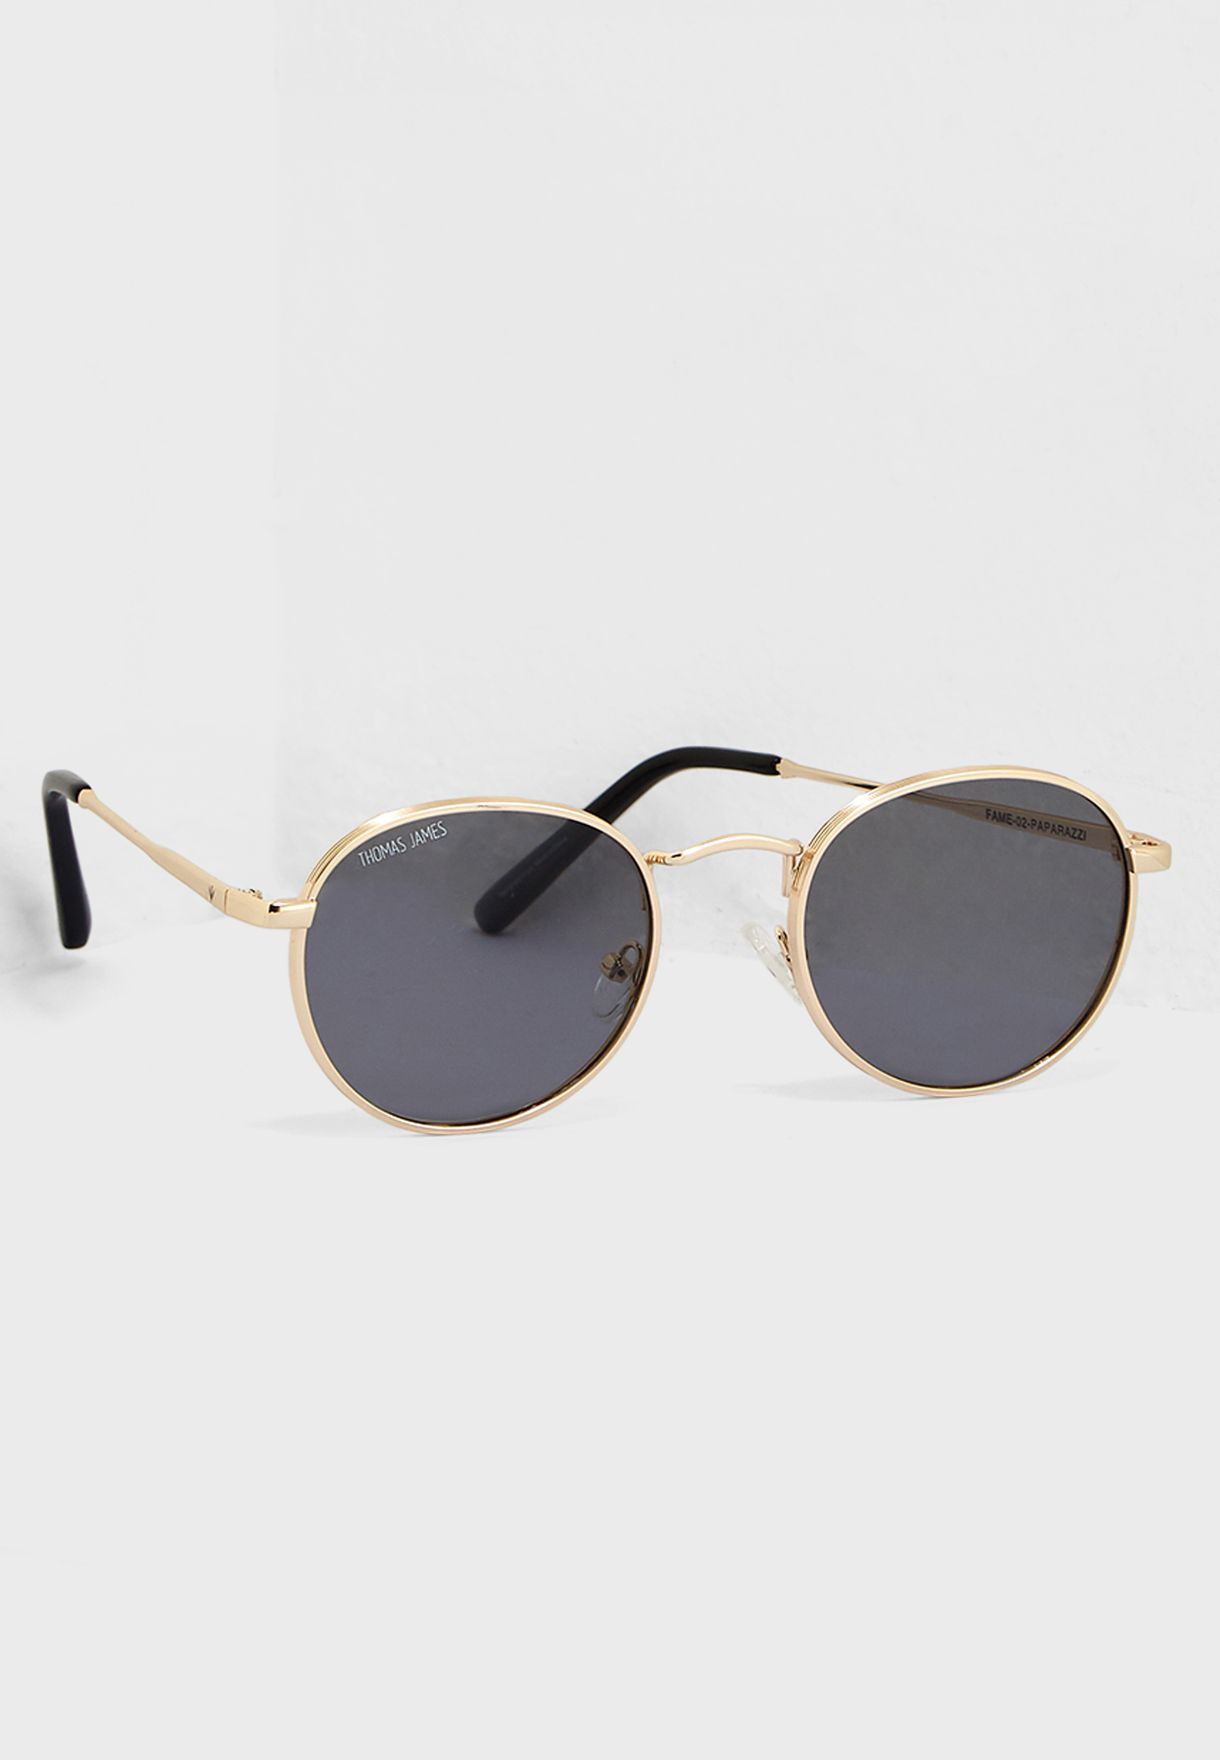 1a8416f04848 Shop Thomas James Los Angeles gold Fame Sunglasses FAME for Women in ...